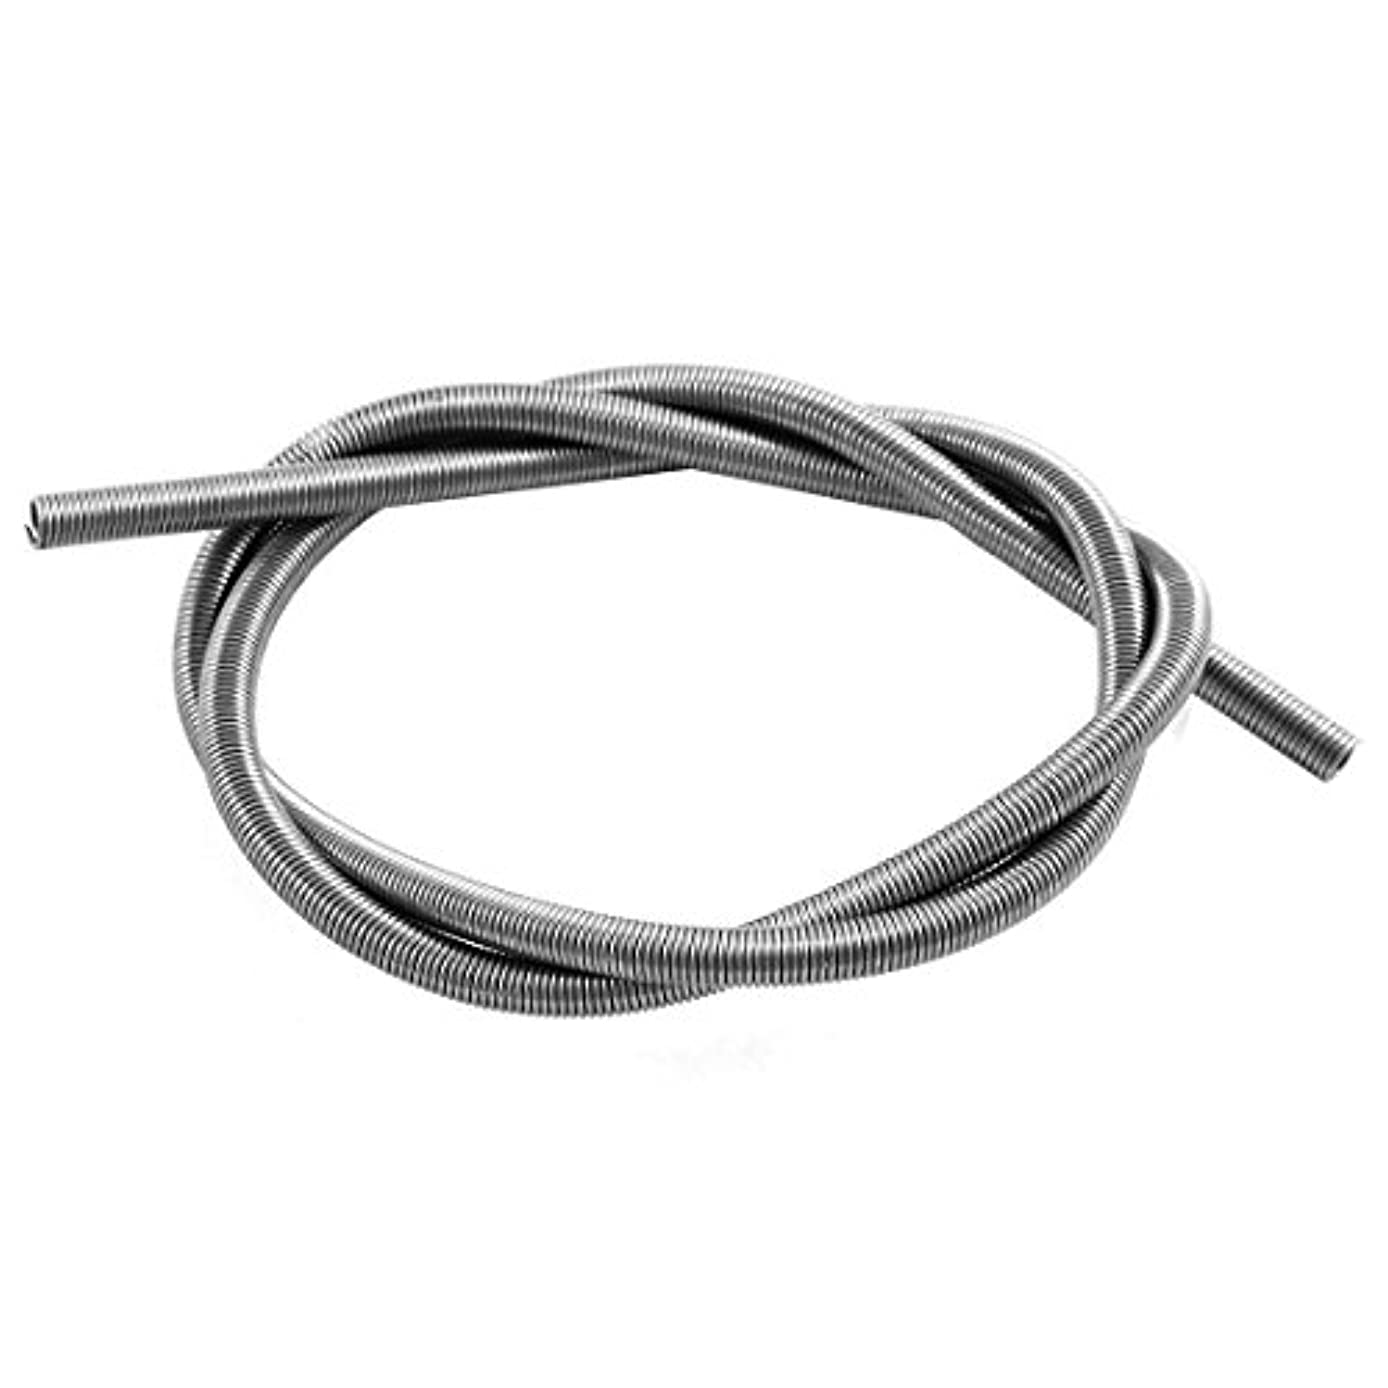 Aexit AC 220V Temperature & Humidity 1500W Metal Heating Element Coil 57cm Long Temperature Controllers Silver Tone